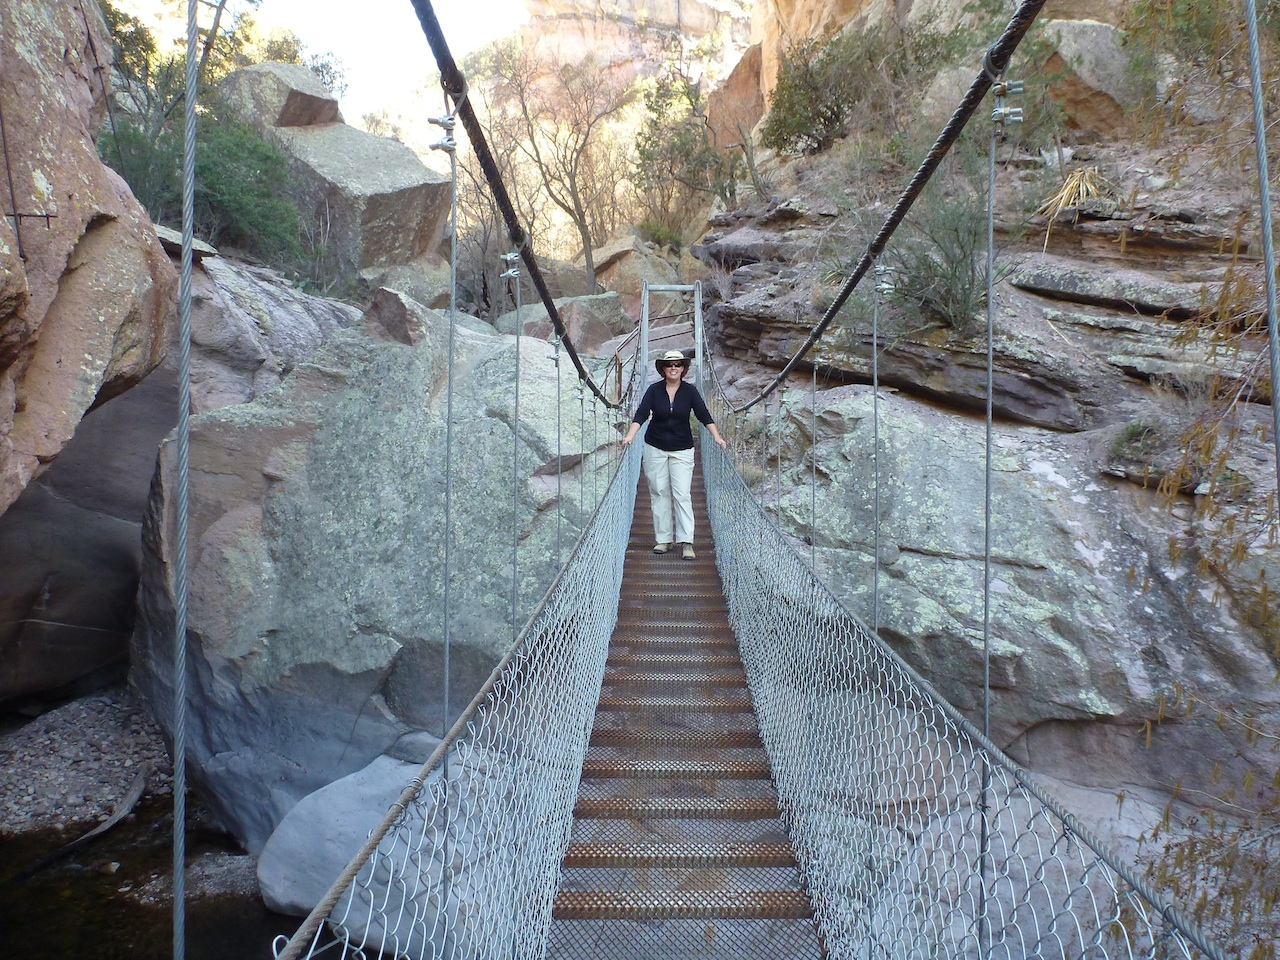 Brenda On One Of The Suspended Bridges Spanning Over The Canyon Floor